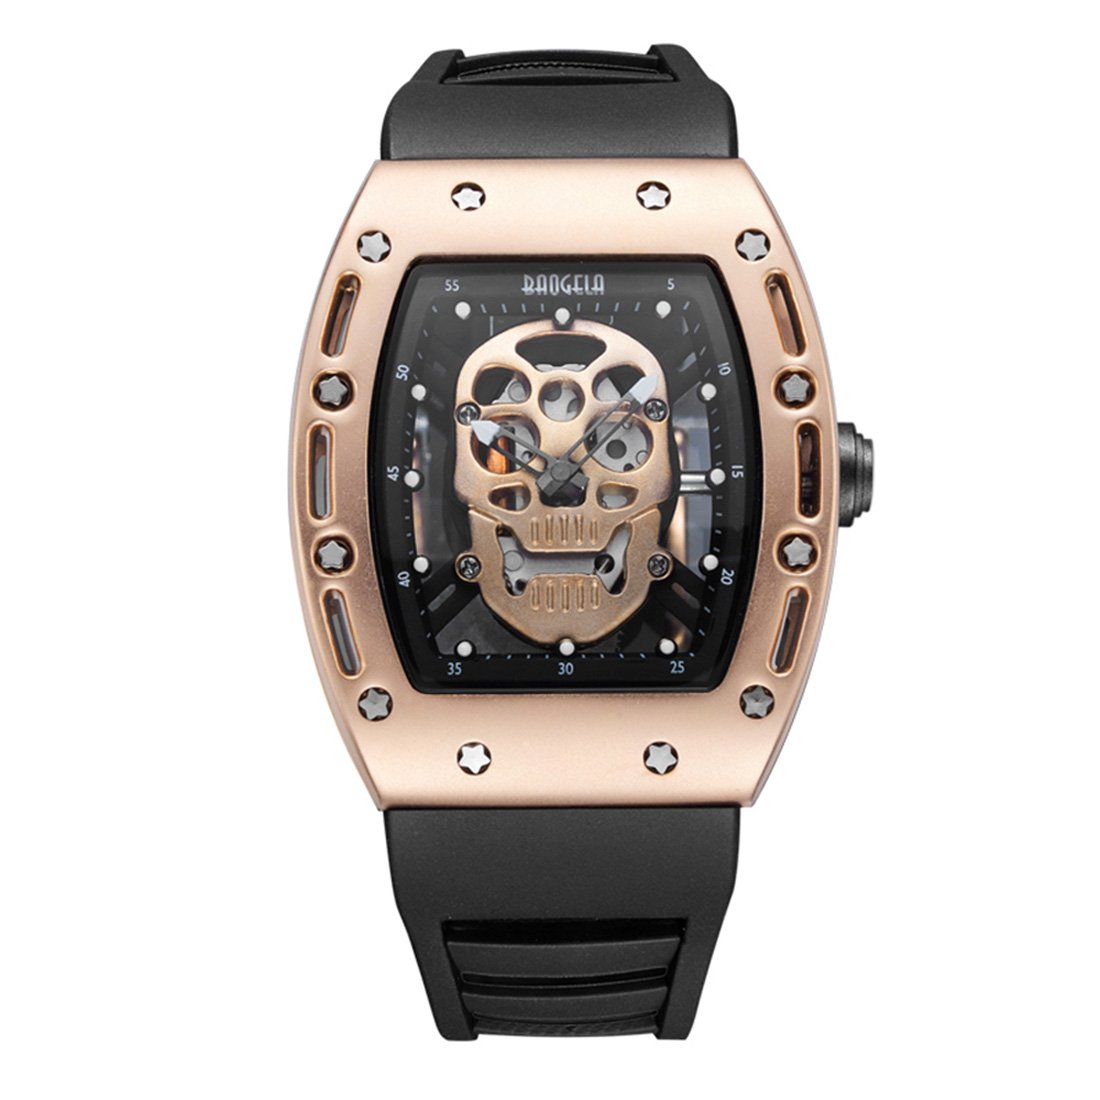 BOFUTE Men's Skeleon Luminous Dial Outdoor Sports Gifts Quartz Watch with Silicone Band(Black Rose Gold)